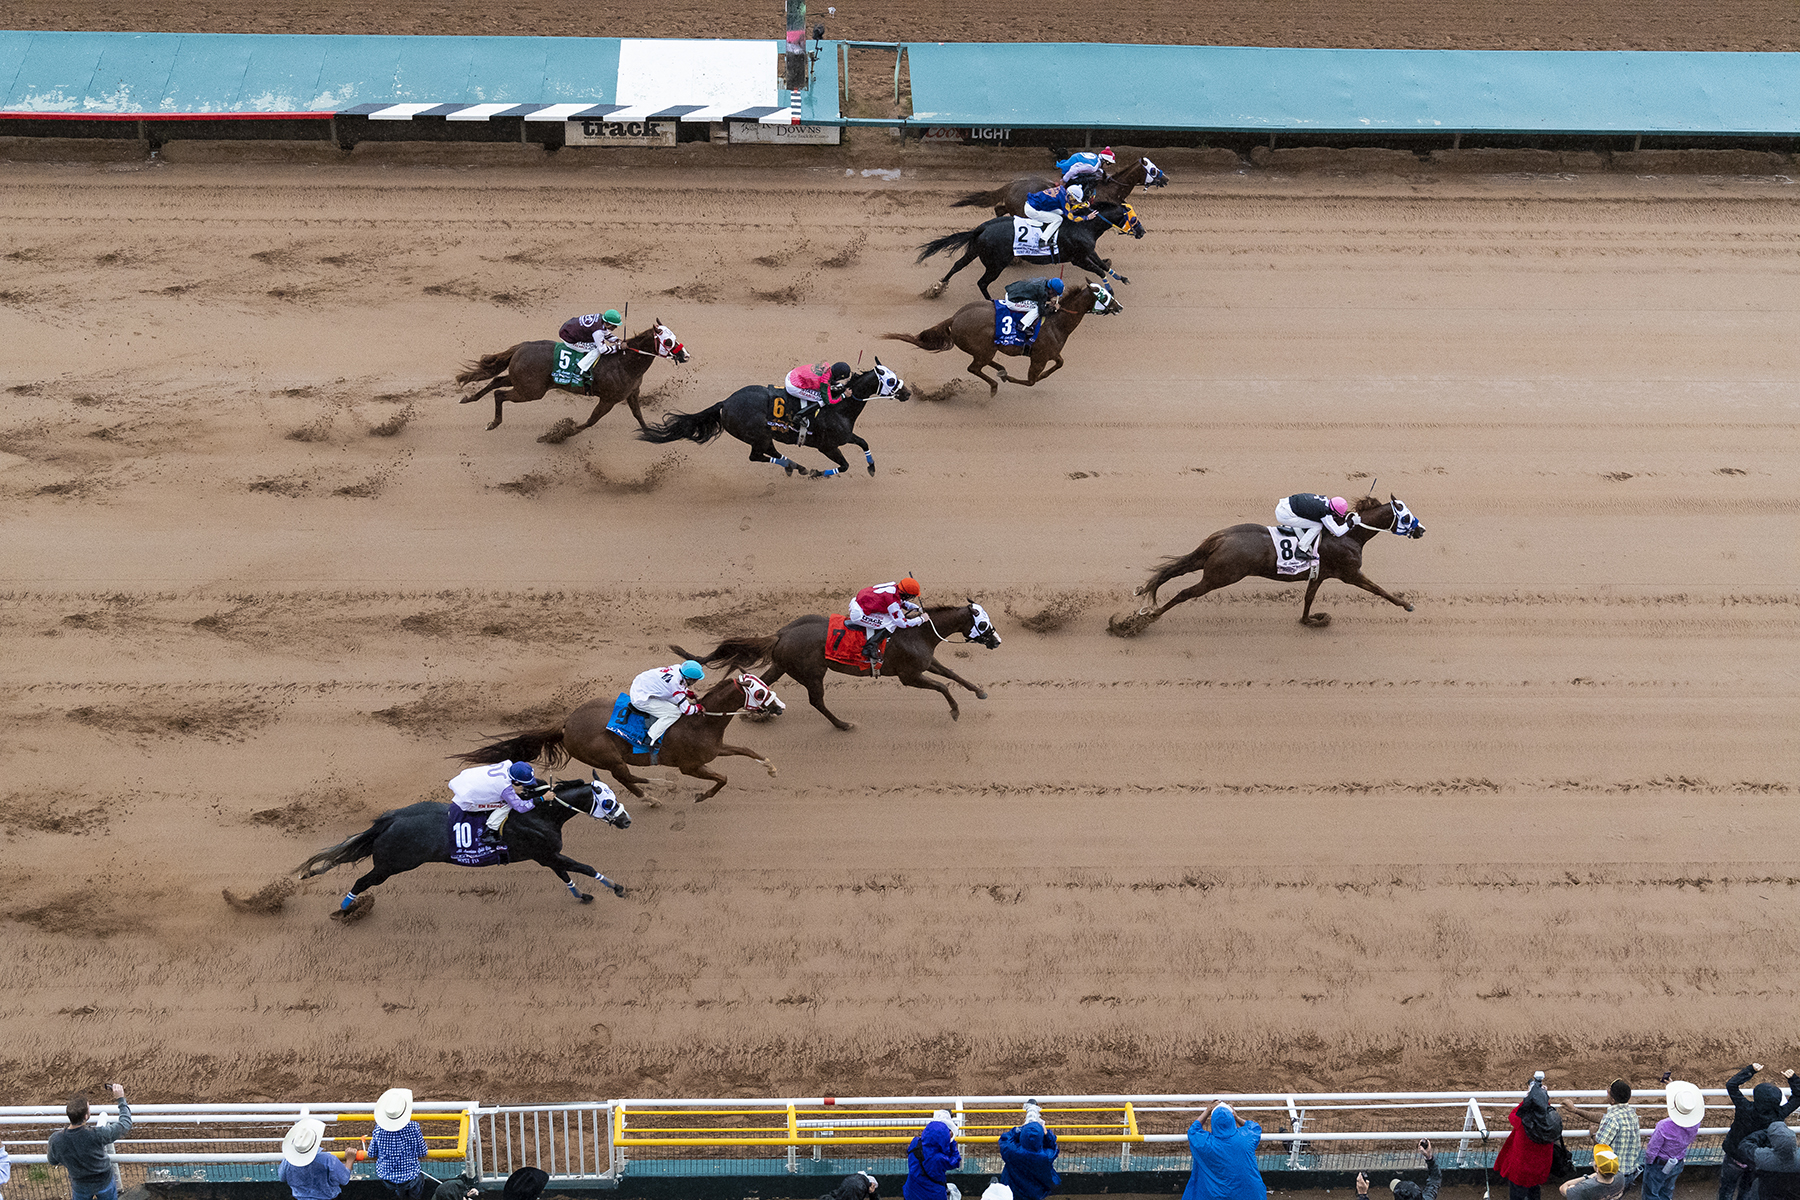 Four Sixes Ranch headed into Ruidoso Hall of Fame